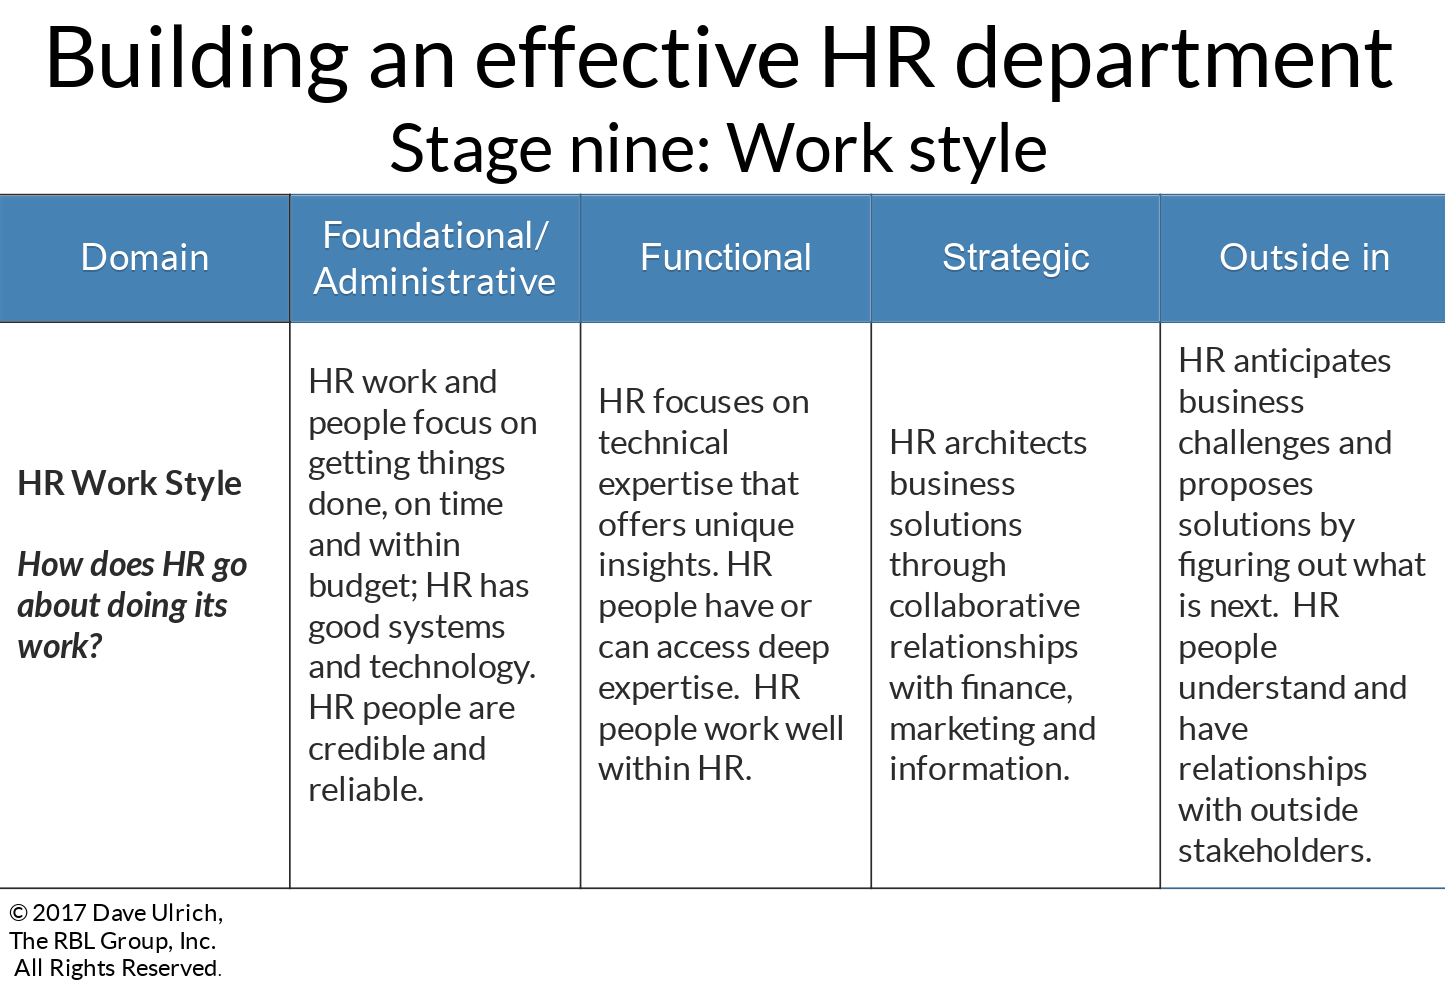 Building an effective HR department stage nine